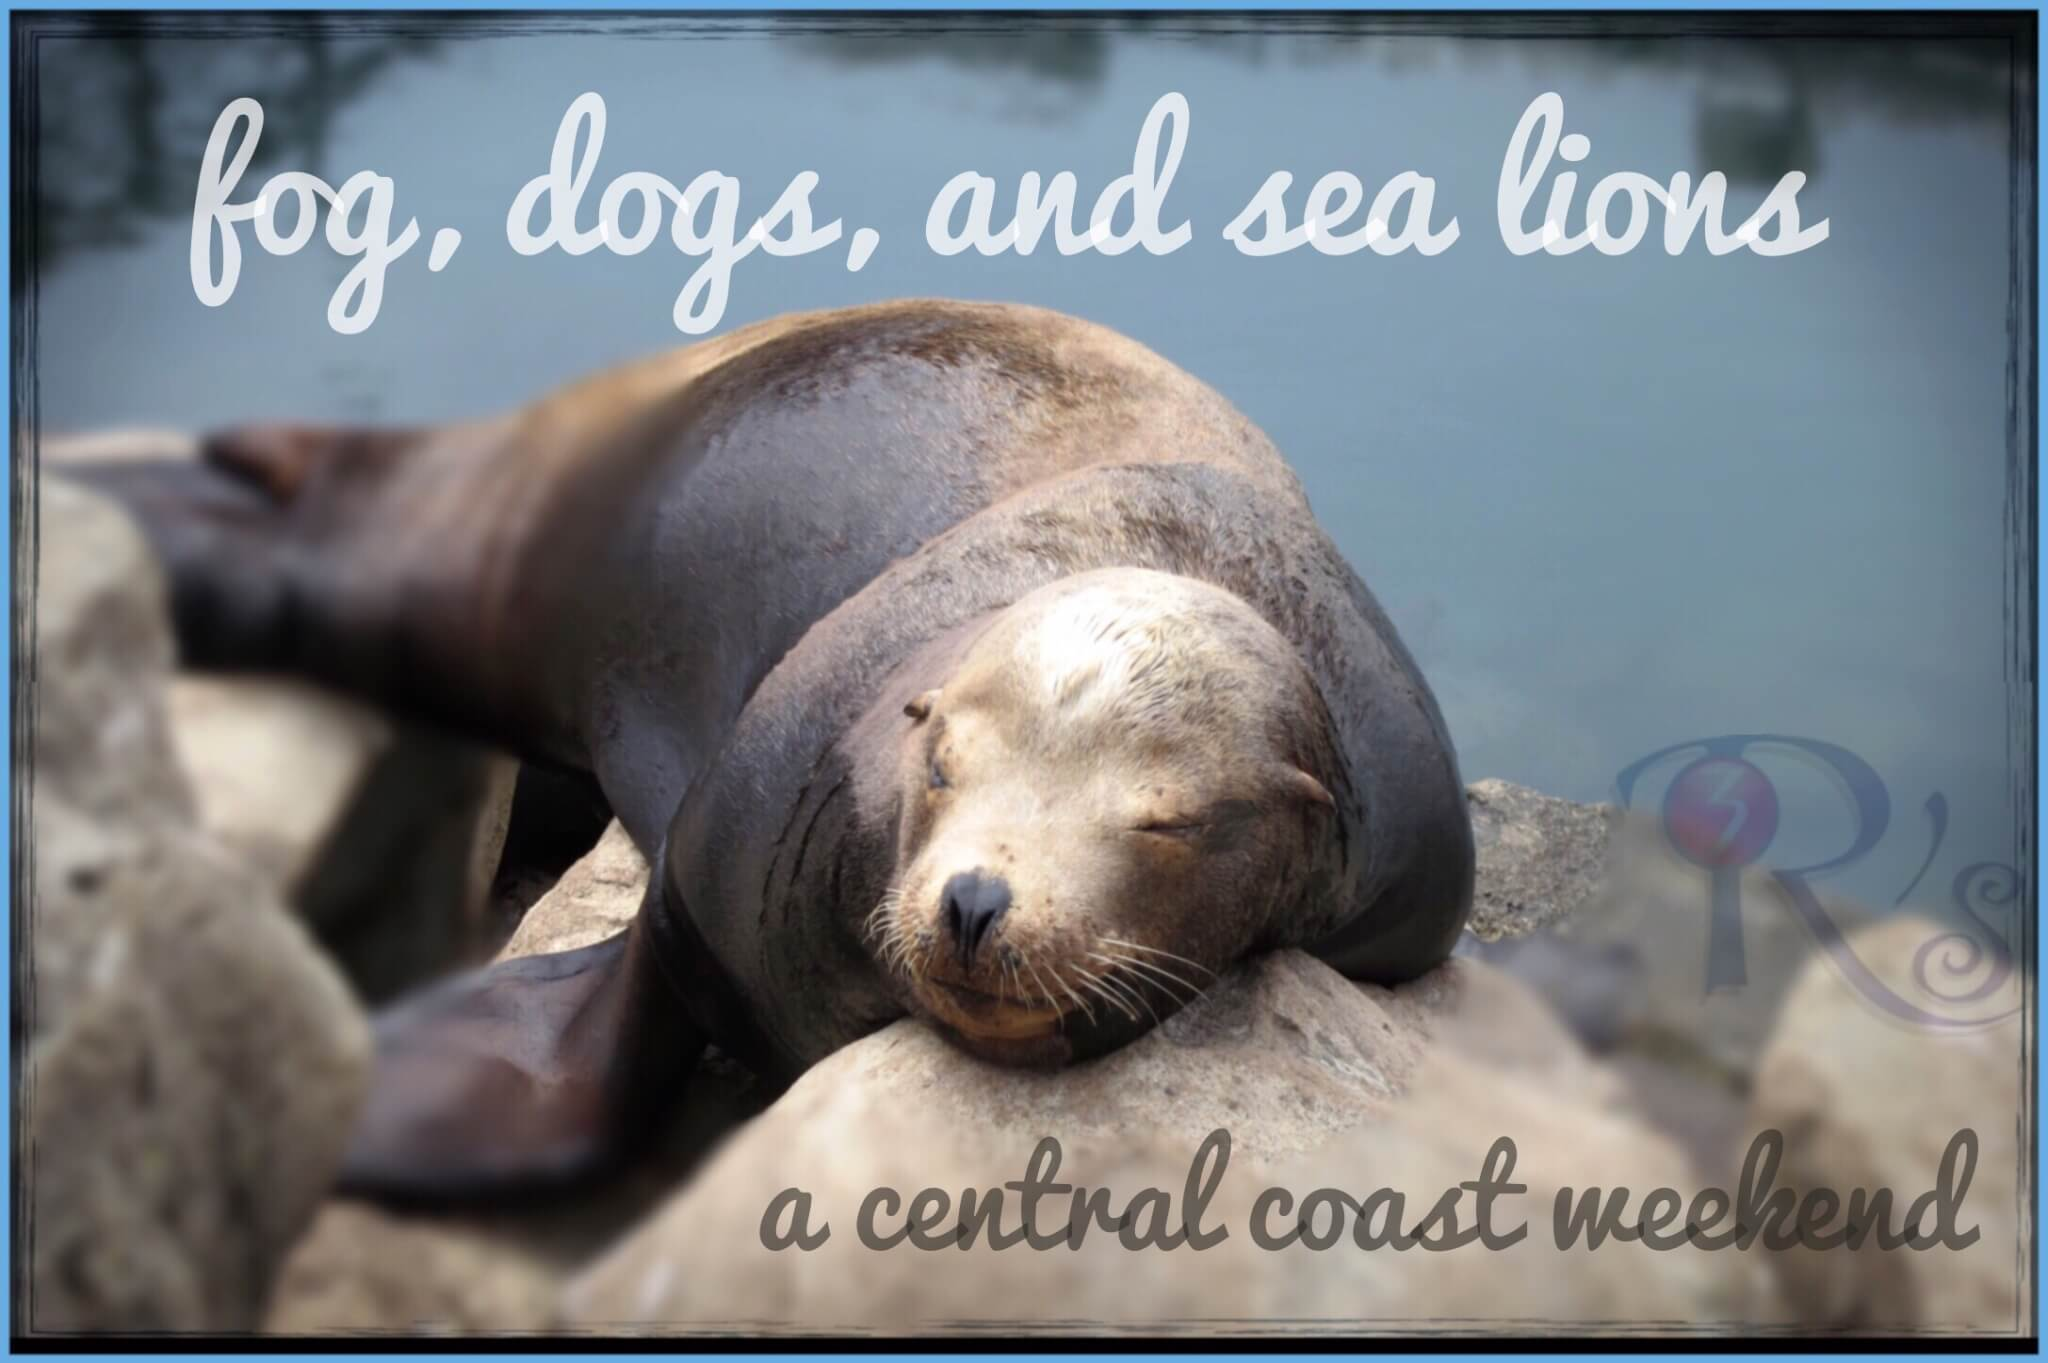 Fog, Dogs, and Sea Lions: A Central Coast Weekend